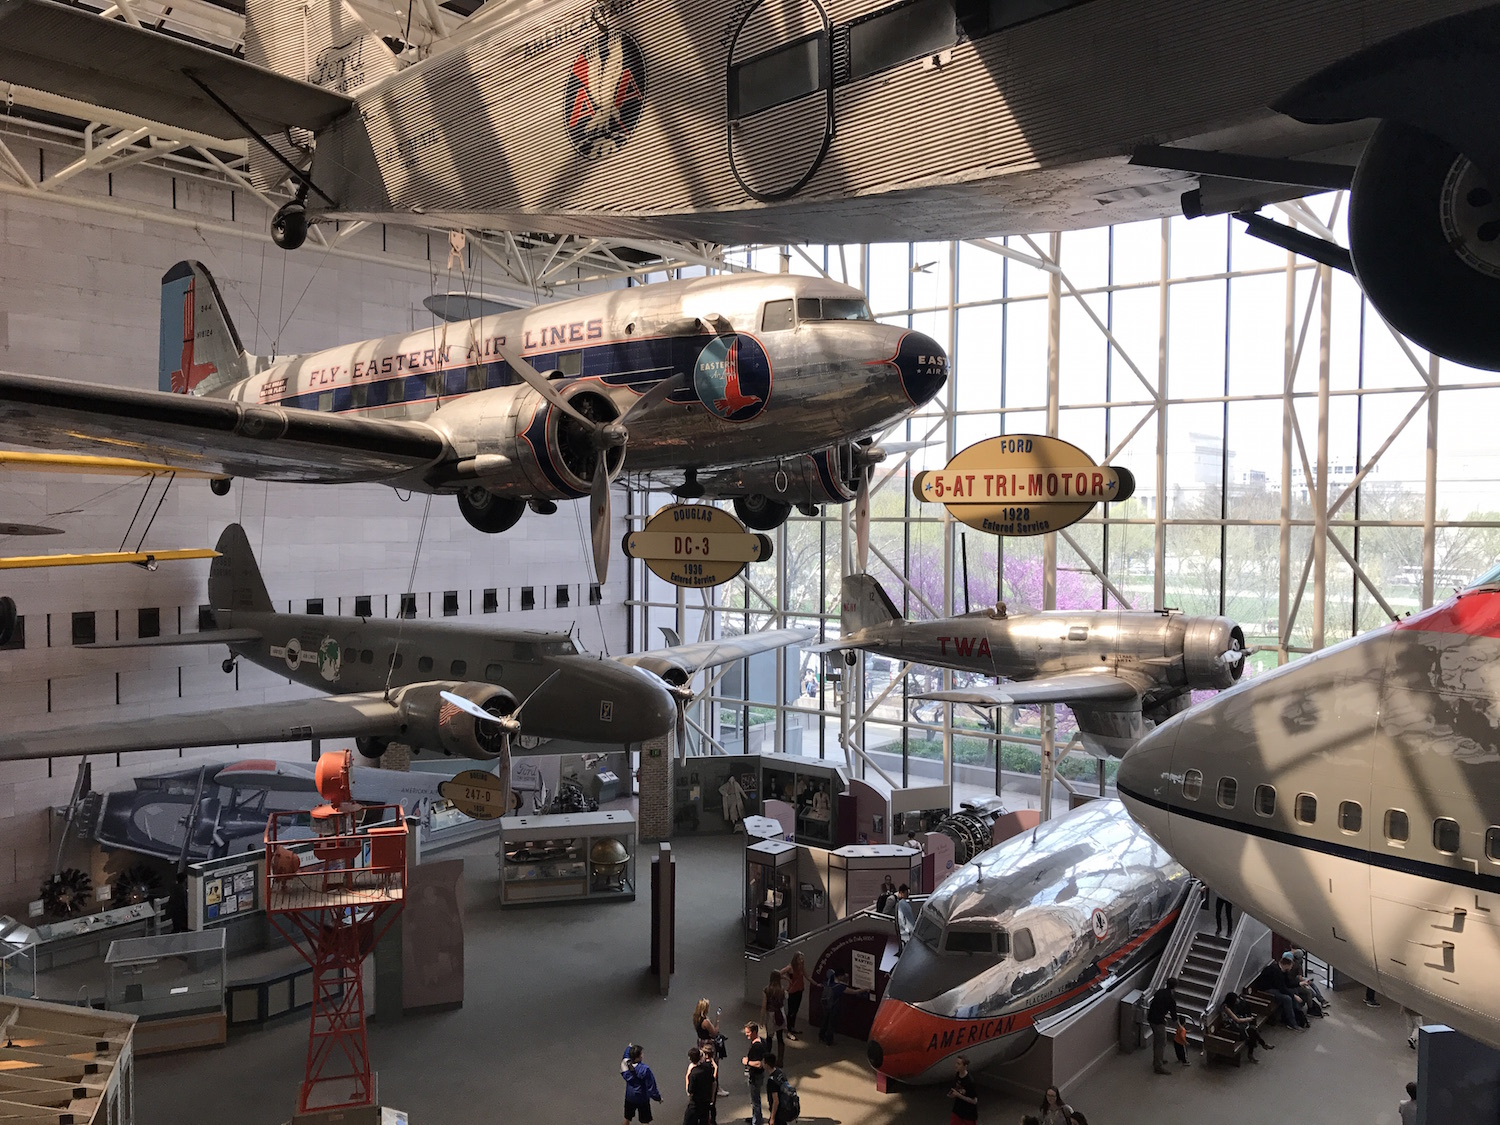 Smithsonian Air & Space Museum